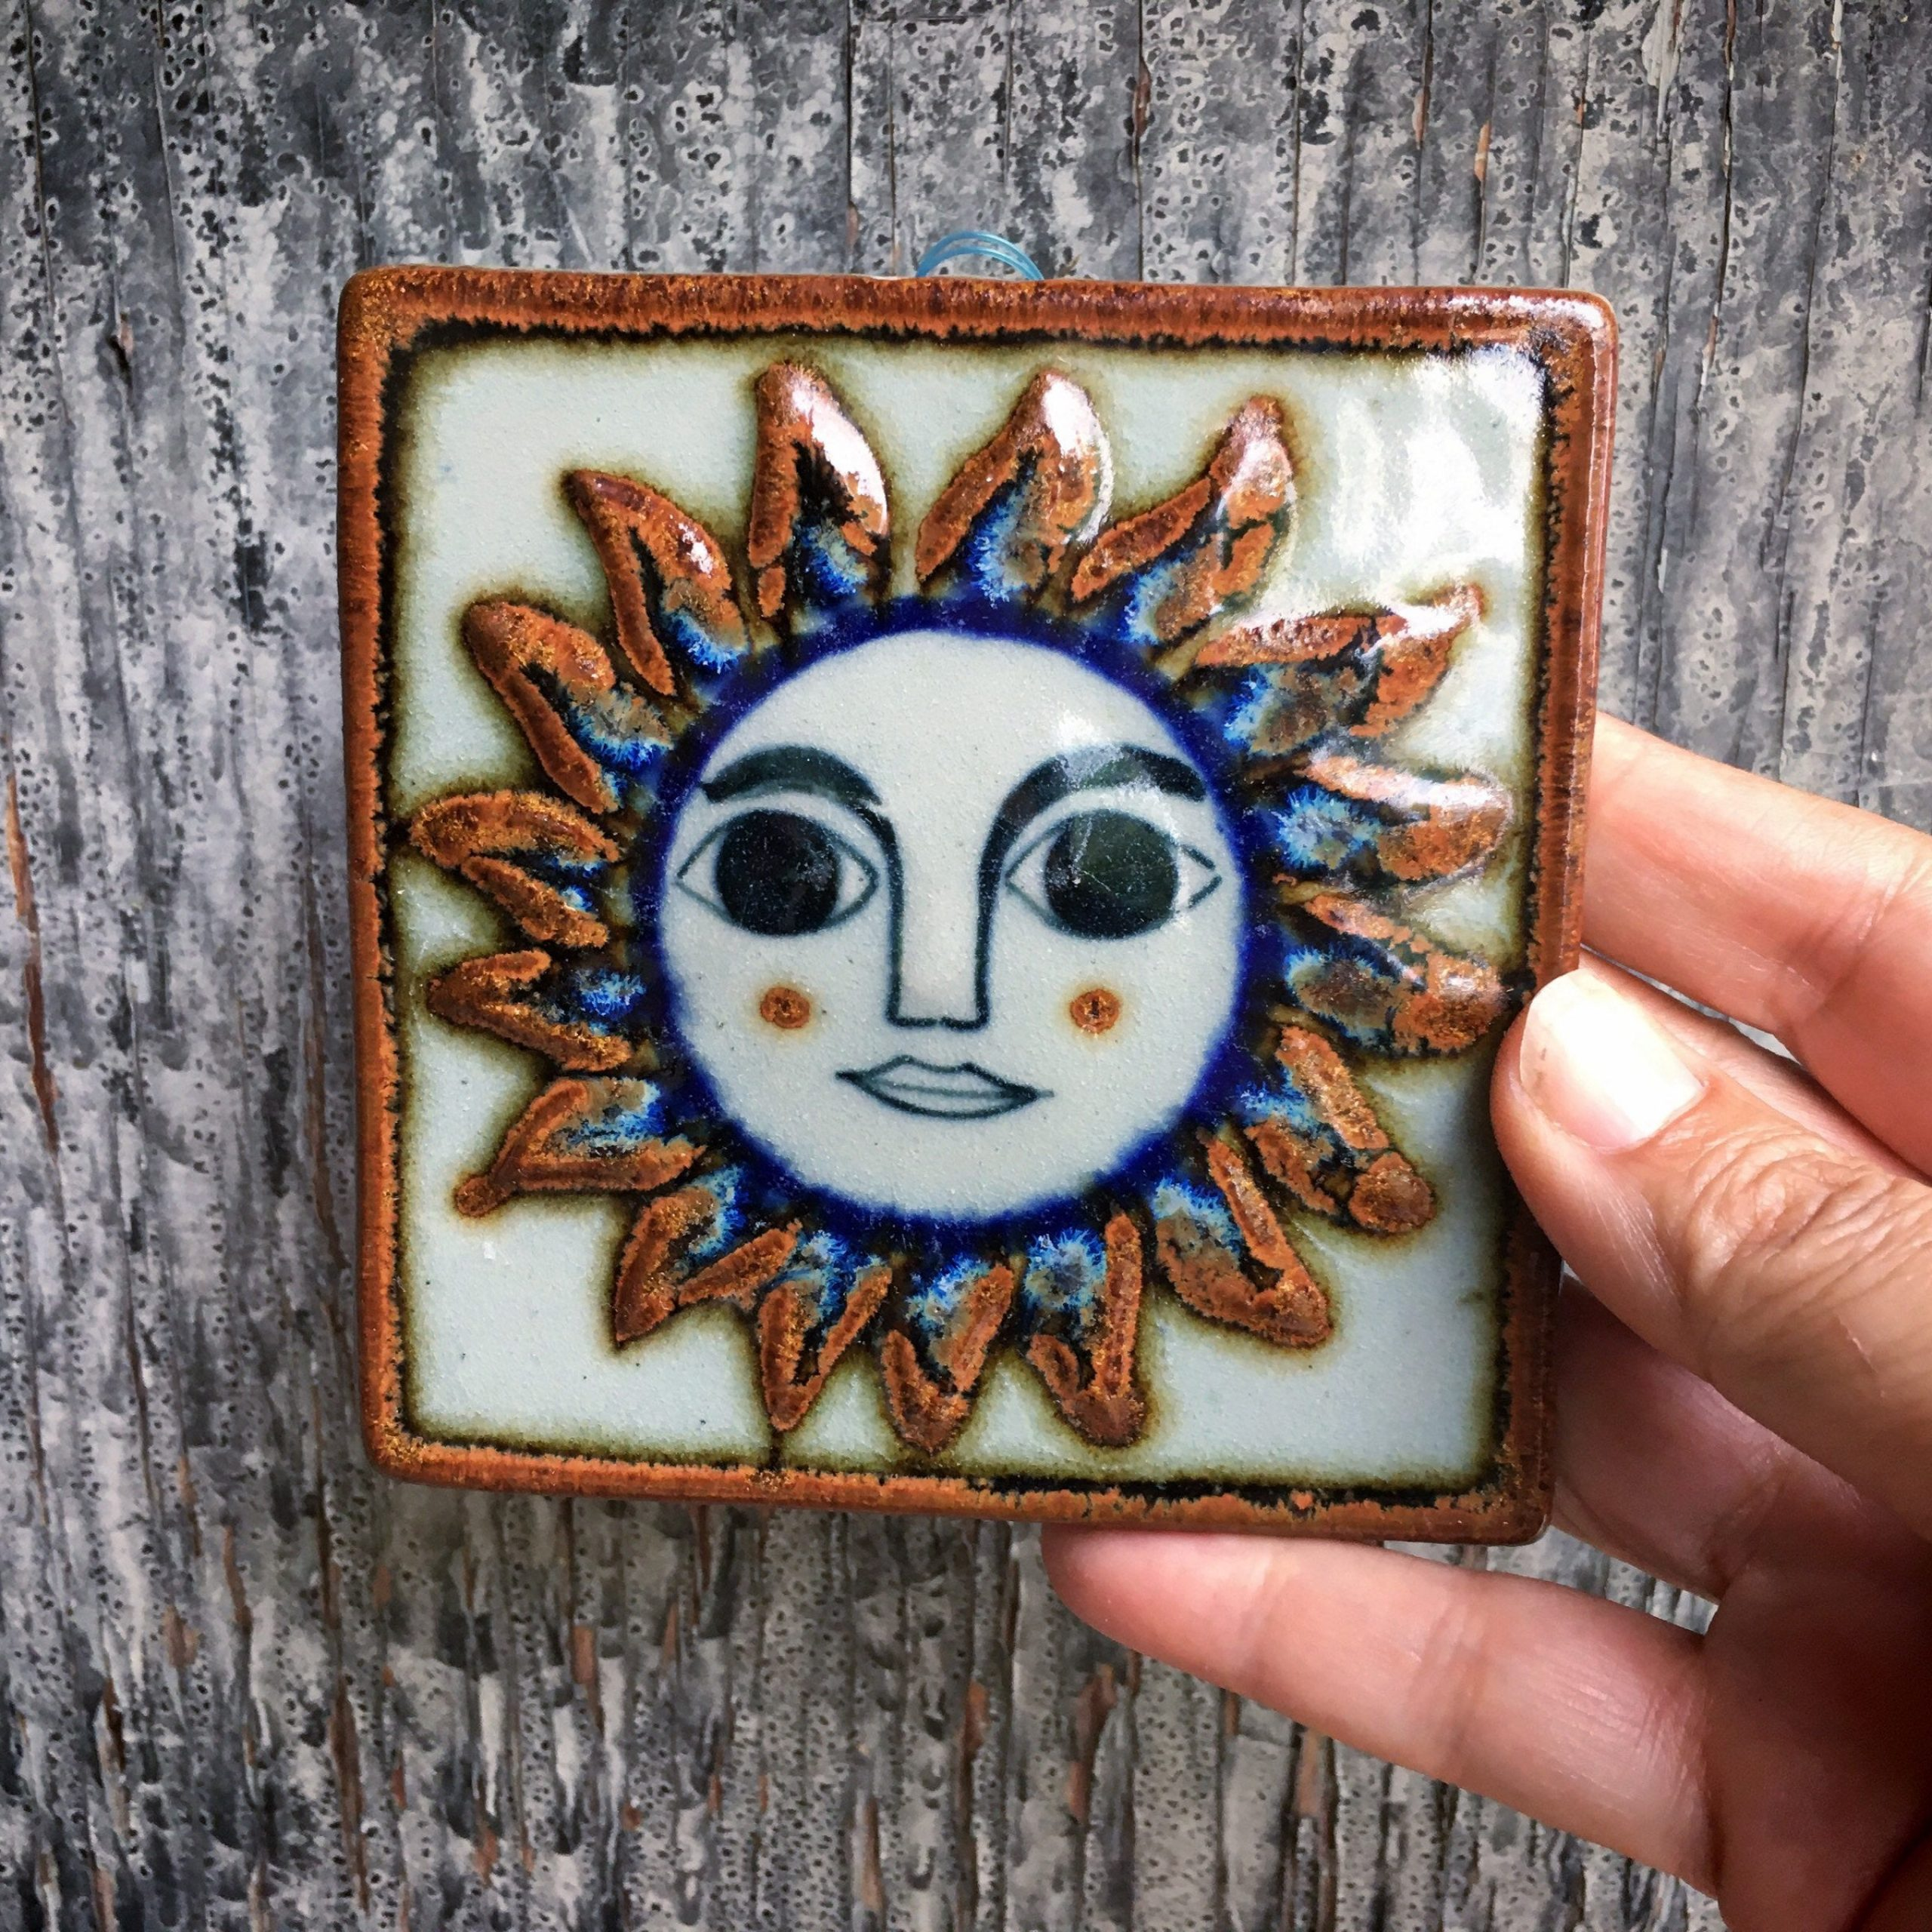 Ceramic Rustic Wall Décor With Regard To Latest Small 4x4 Vintage Mexican Ceramic Tile Wall Hanging Of Sun (View 17 of 20)